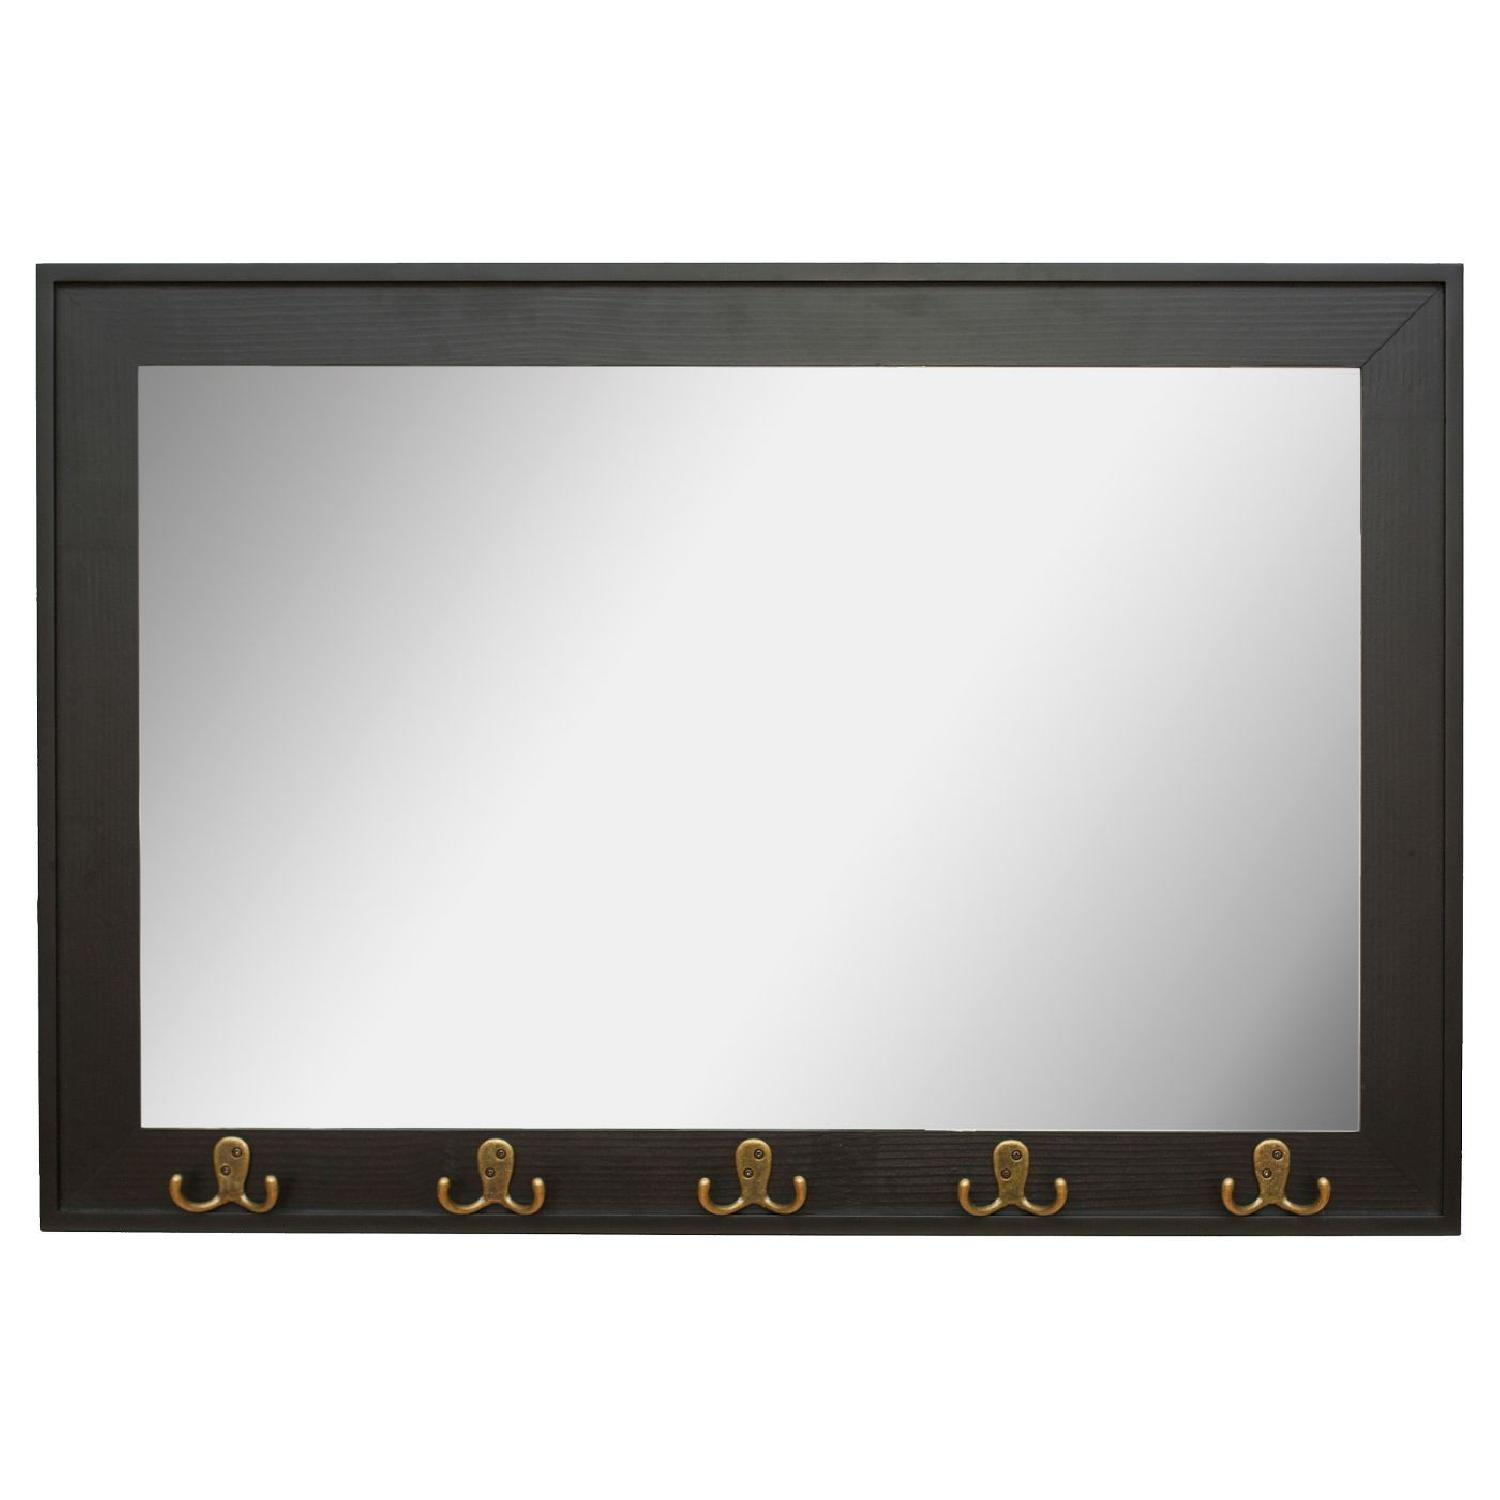 Target Rectangle Entryway Decorative Wall Mirror w/ Hooks - image-0